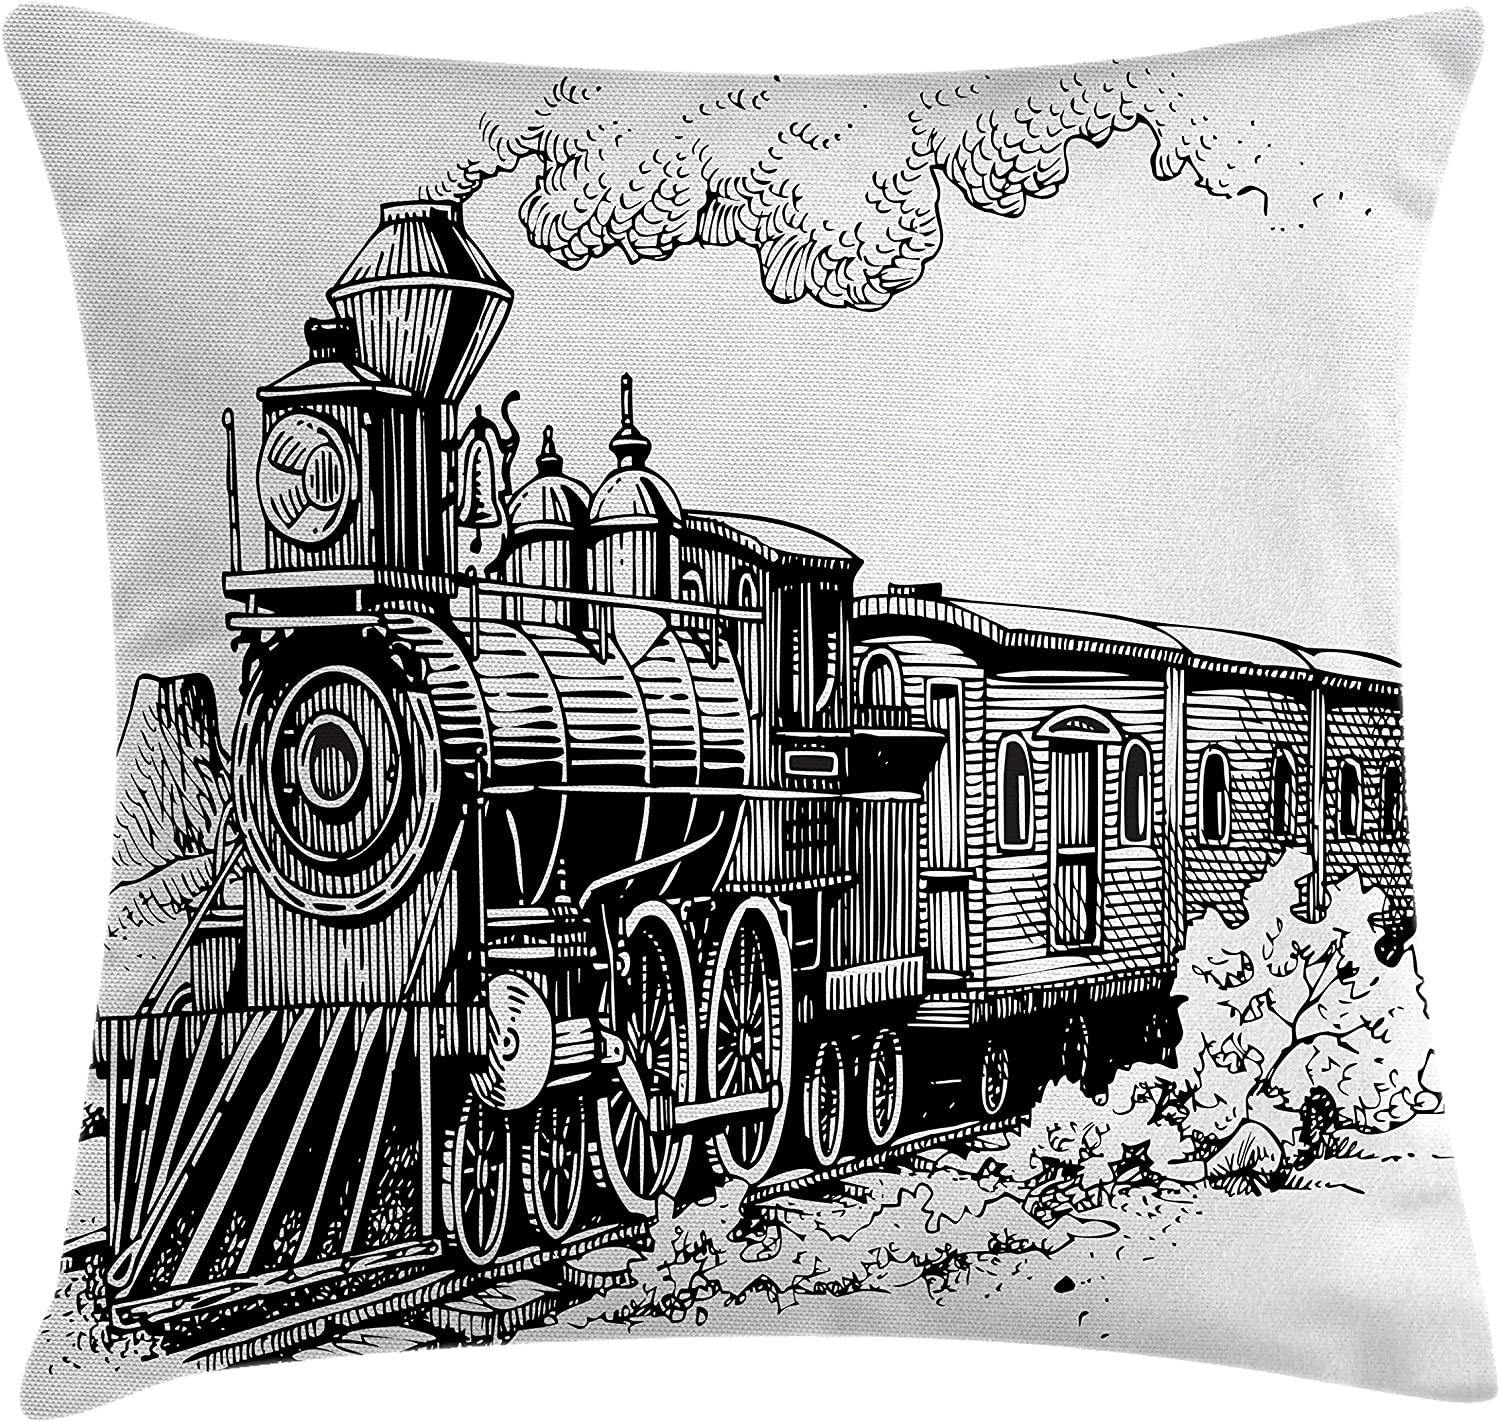 Amazon Com Ambesonne Steam Engine Throw Pillow Cushion Cover Rustic Old Train In Country Locomotive Wooden Wagons Rail Road With Smoke Decorative Square Accent Pillow Case 16 X 16 Black And White Home